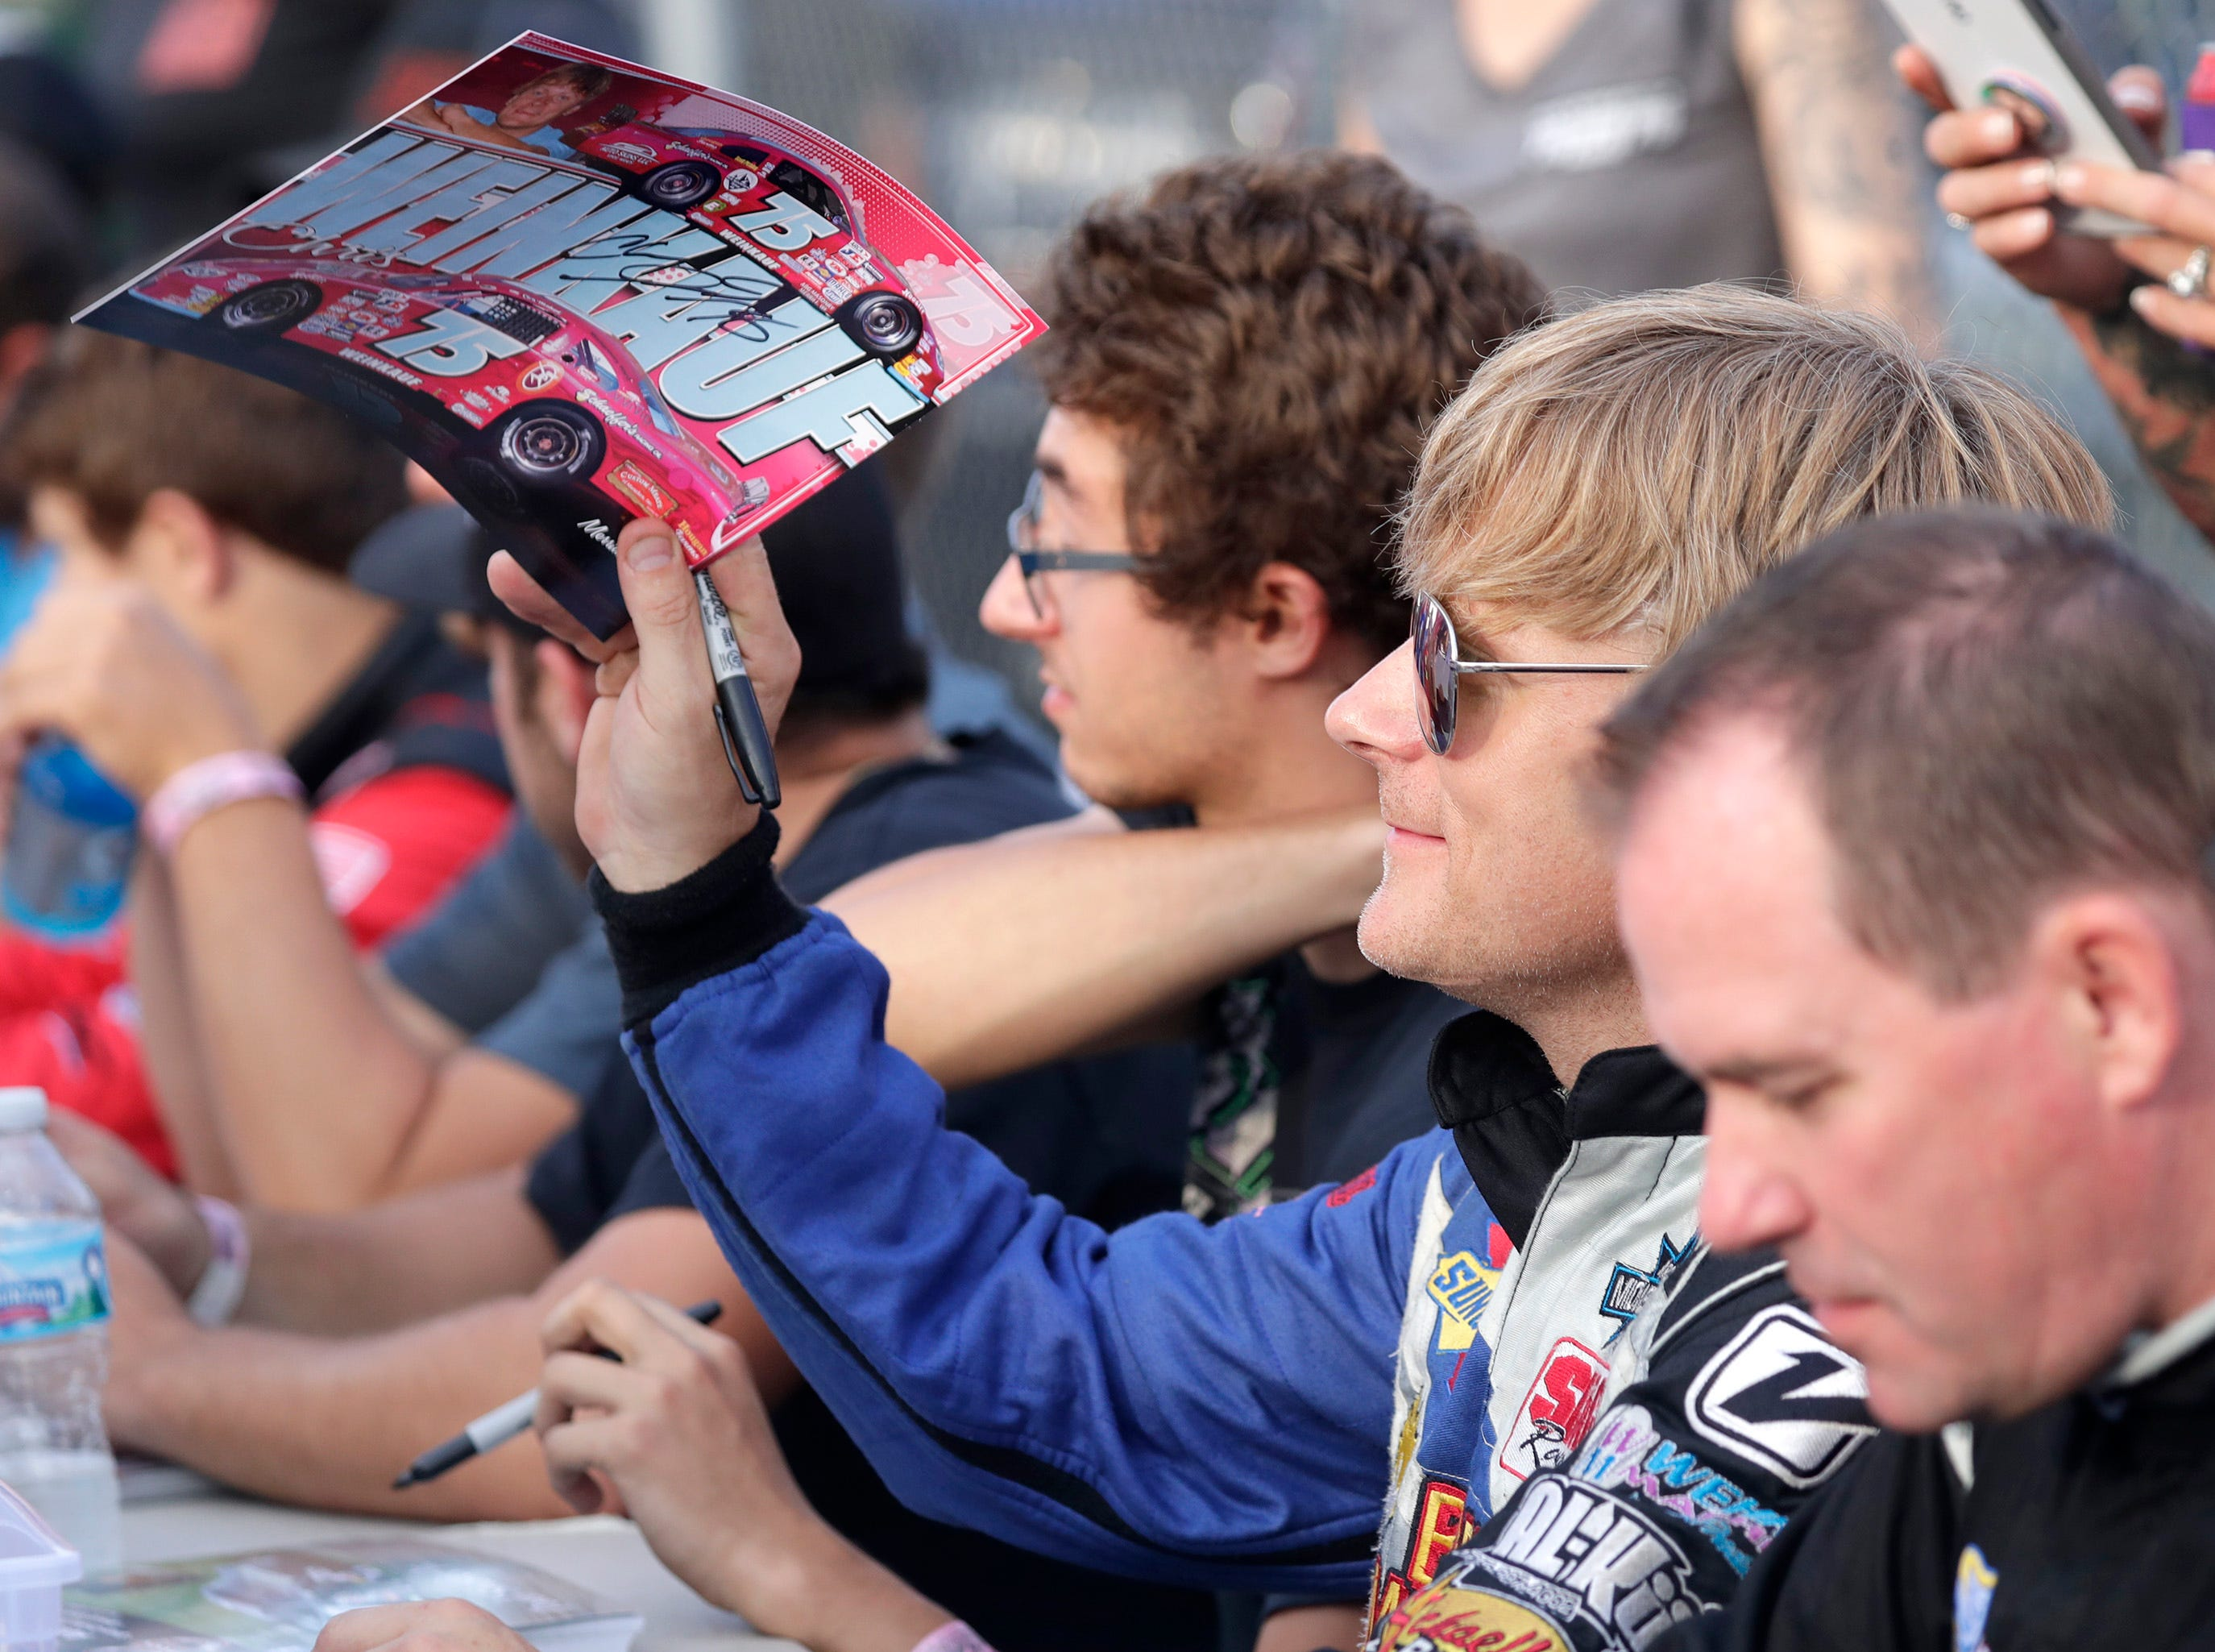 Cghris Weinkauf #75 signs autographs before the ARCA Dixieland 250 on Tuesday, August 7, 2018, at Wisconsin International Raceway in Kaukauna, Wis. 